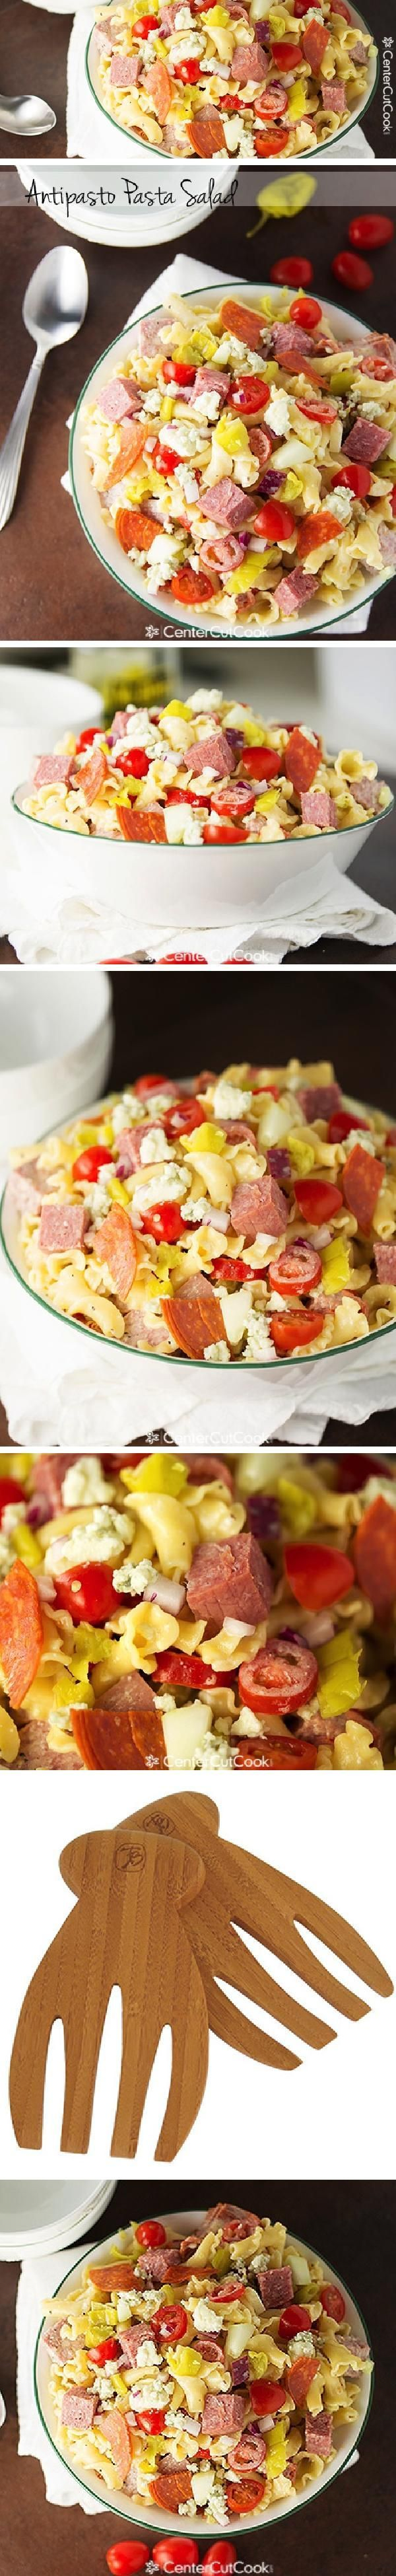 The Classic Italian ANTIPASTA pasta platter is turned into a perfect pasta SALAD with chunks of pepperoni, pepperoncini peppers, tomatoes, cucumbers, and blue cheese crumbles!